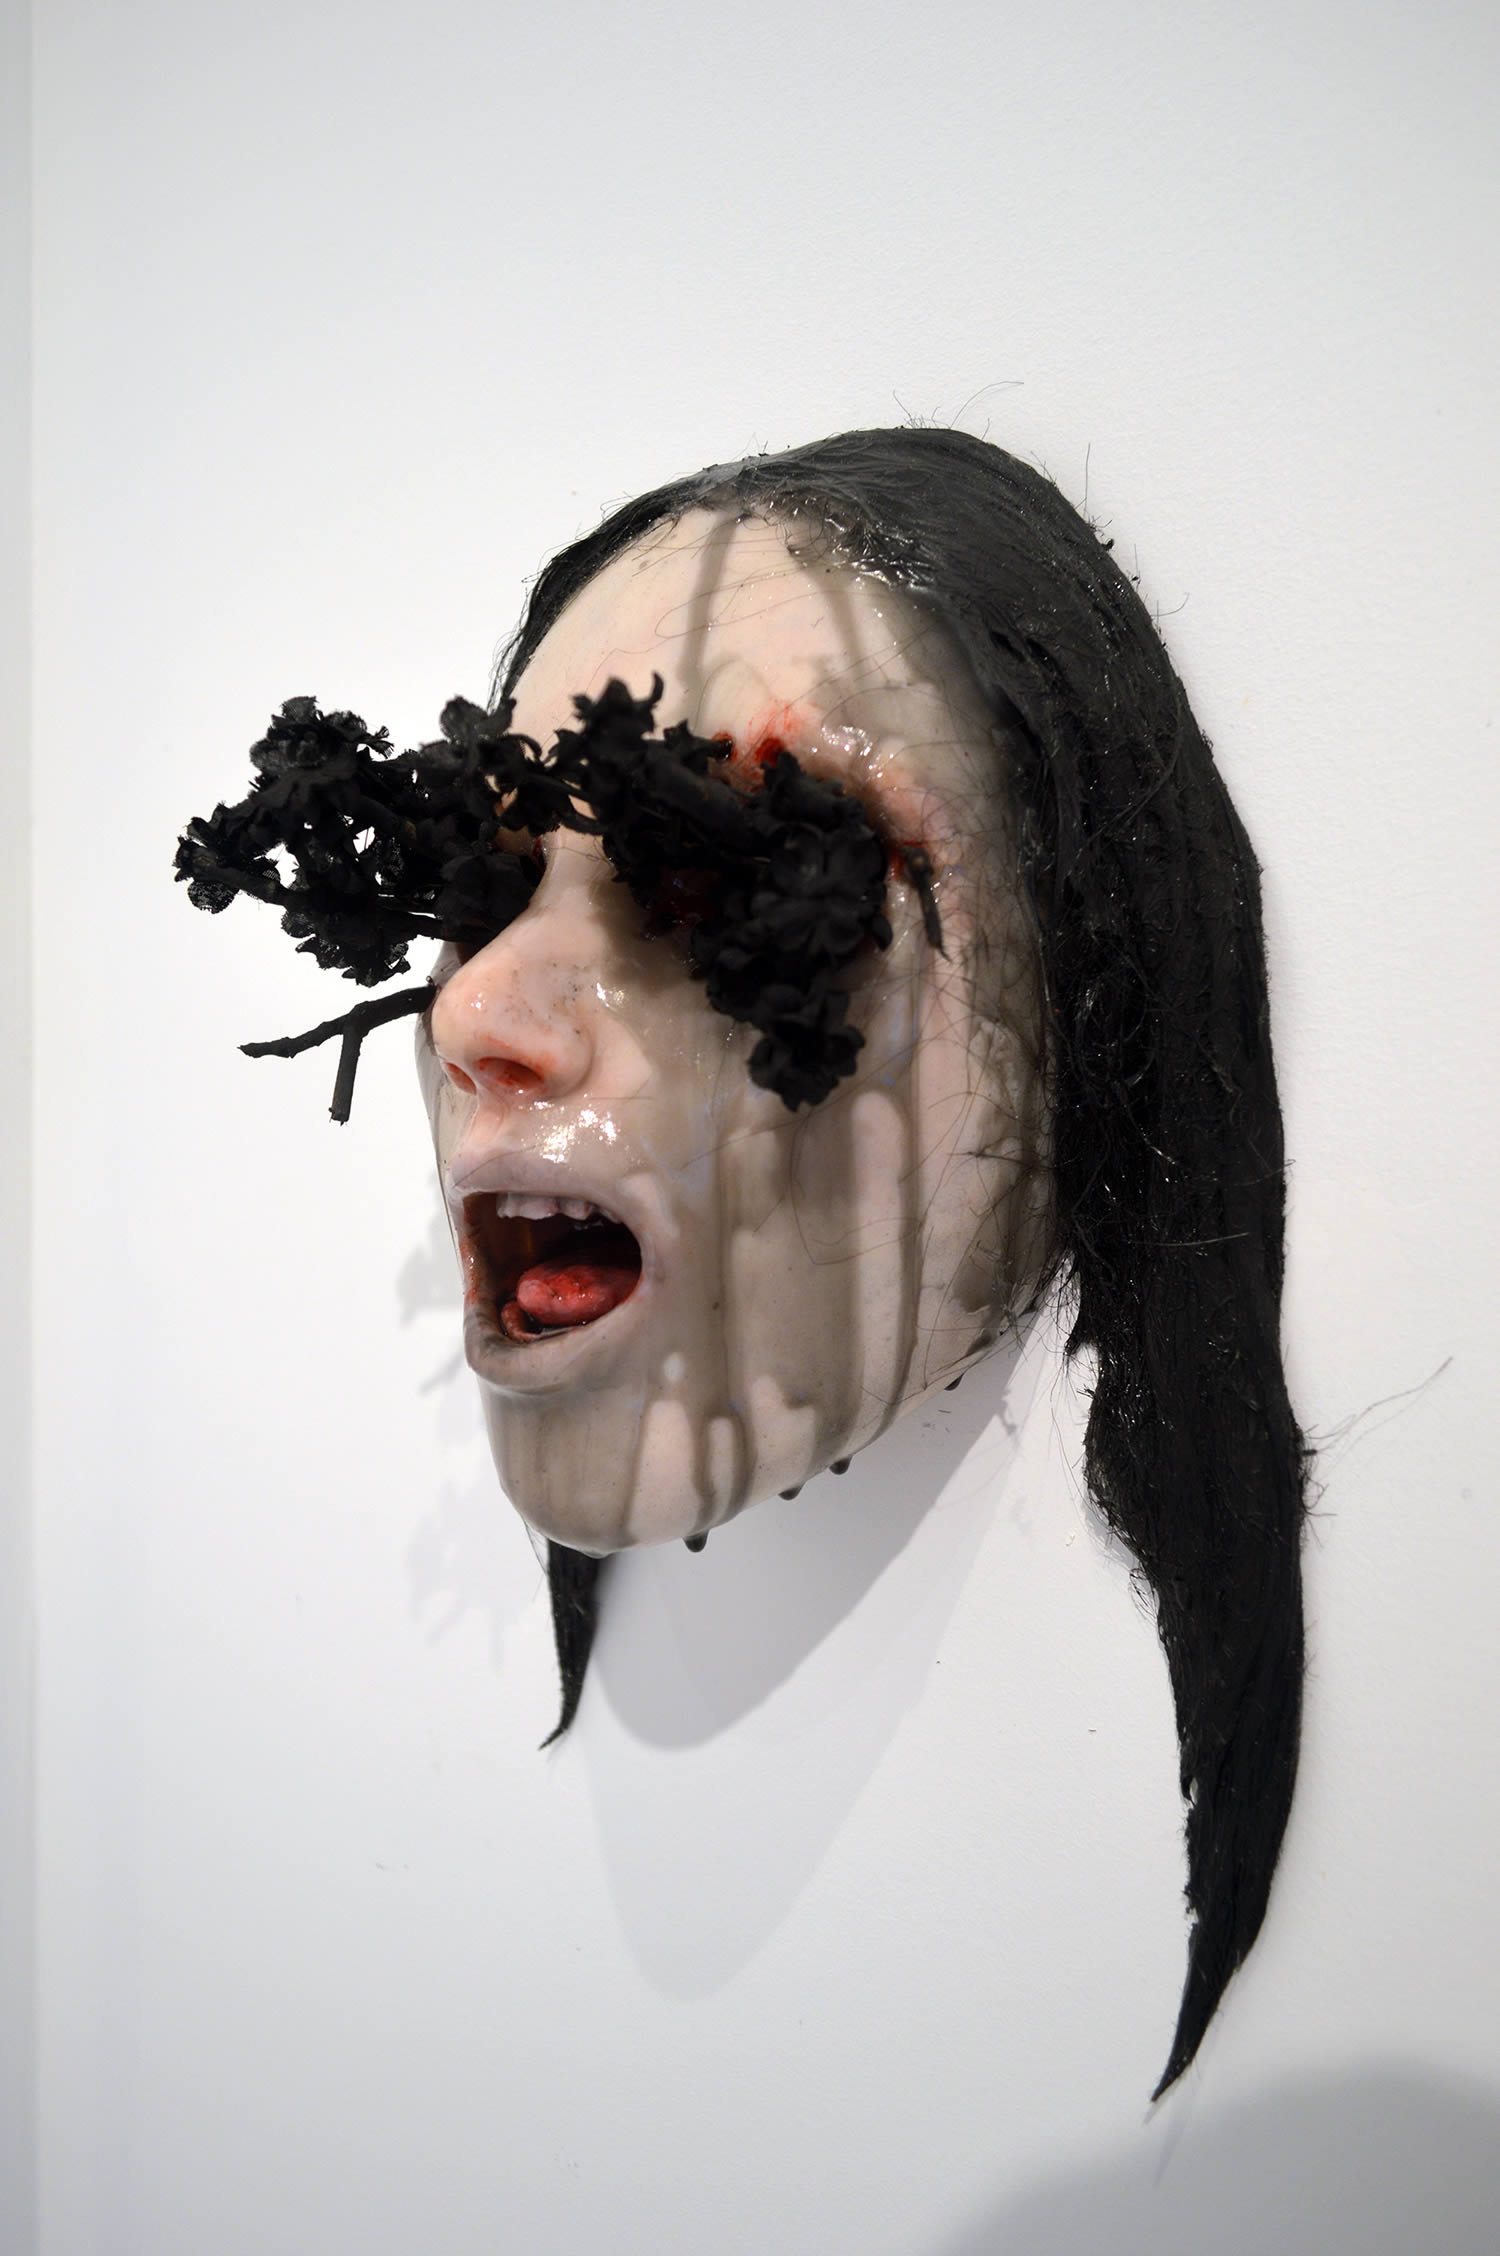 Colin Christian, Stricken - sculpted face with black branches coming out eye sockets